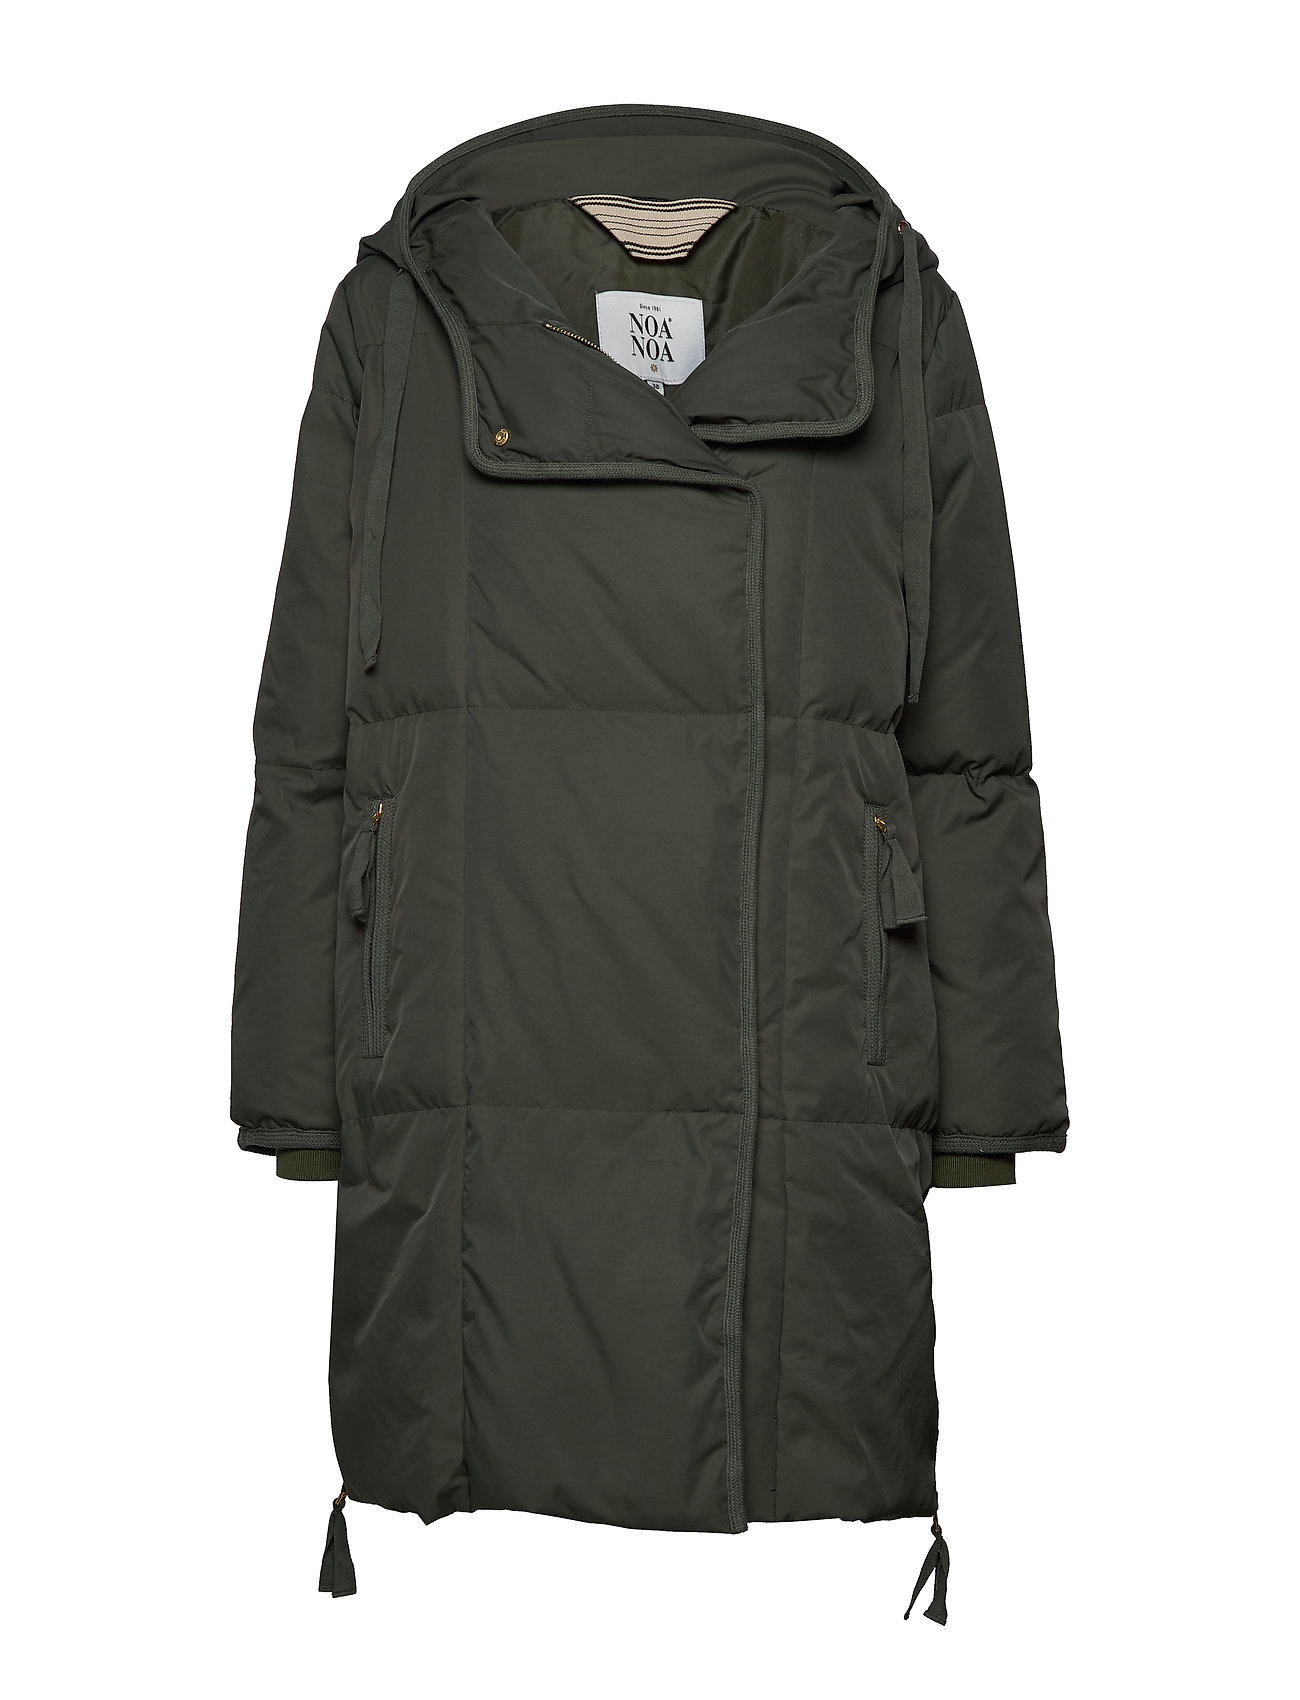 Noa Noa Heavy outerwear - ARMY GREEN